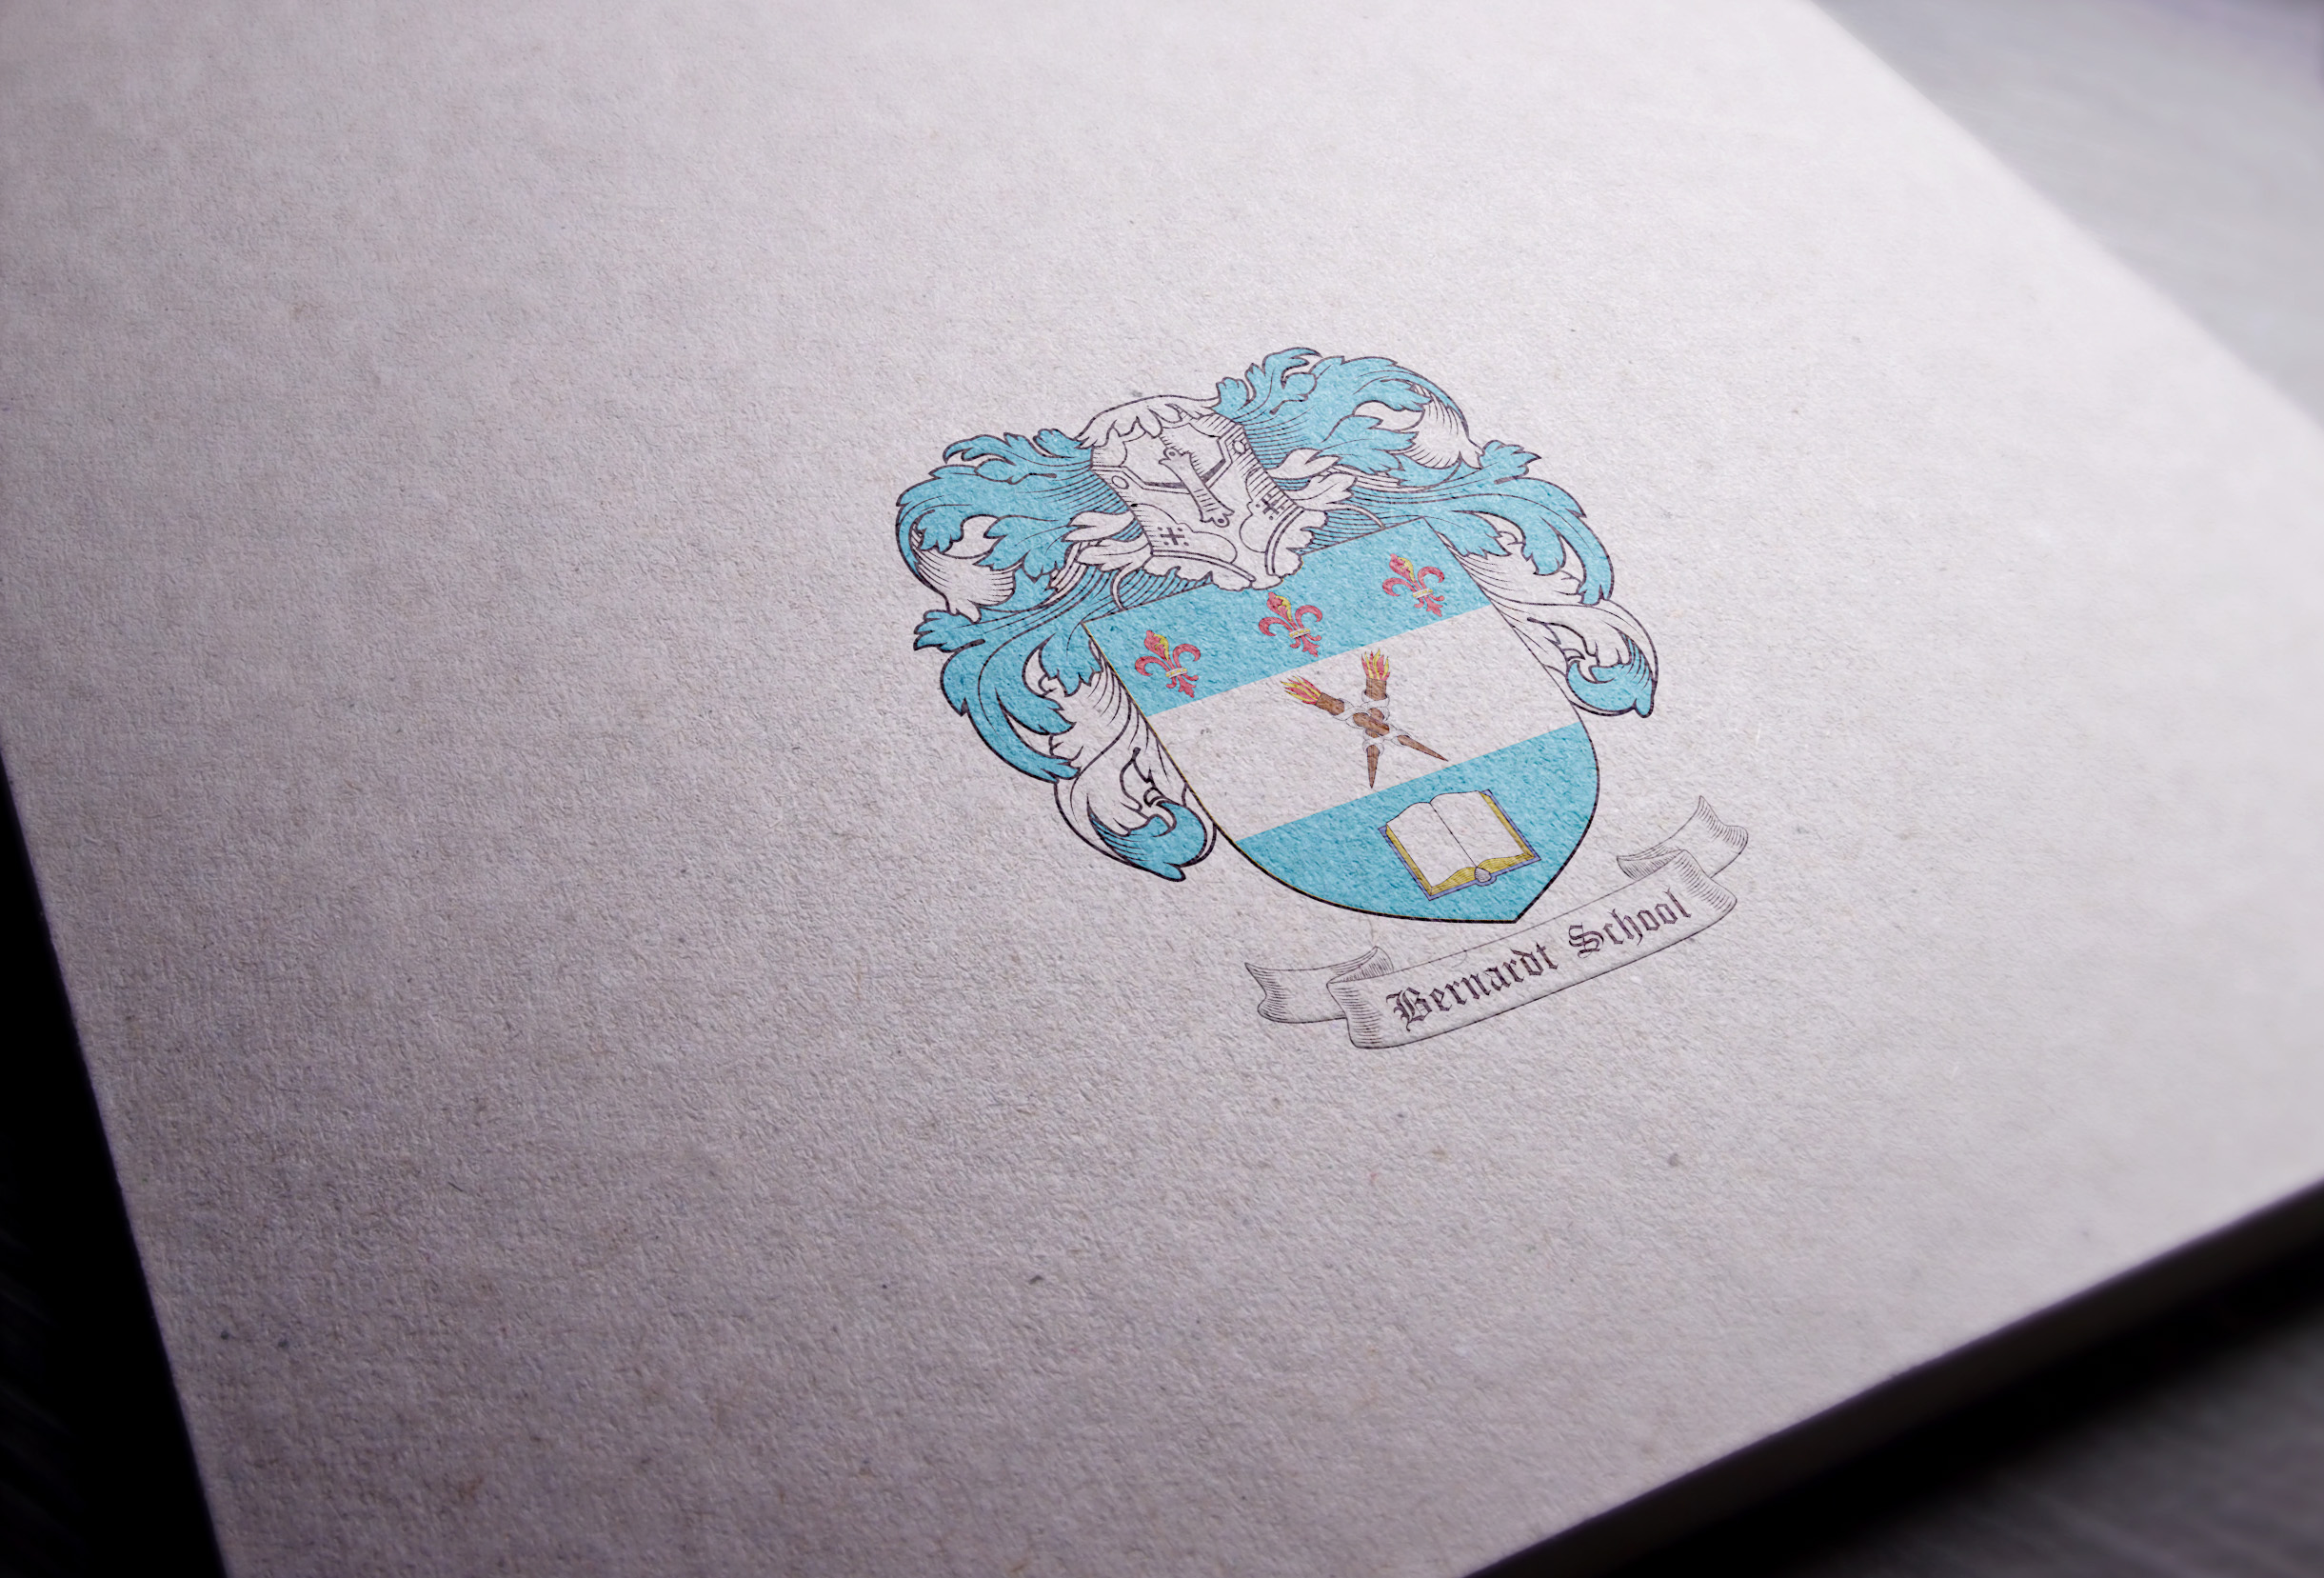 Coat of arms designed for the Bernardt School from Germany